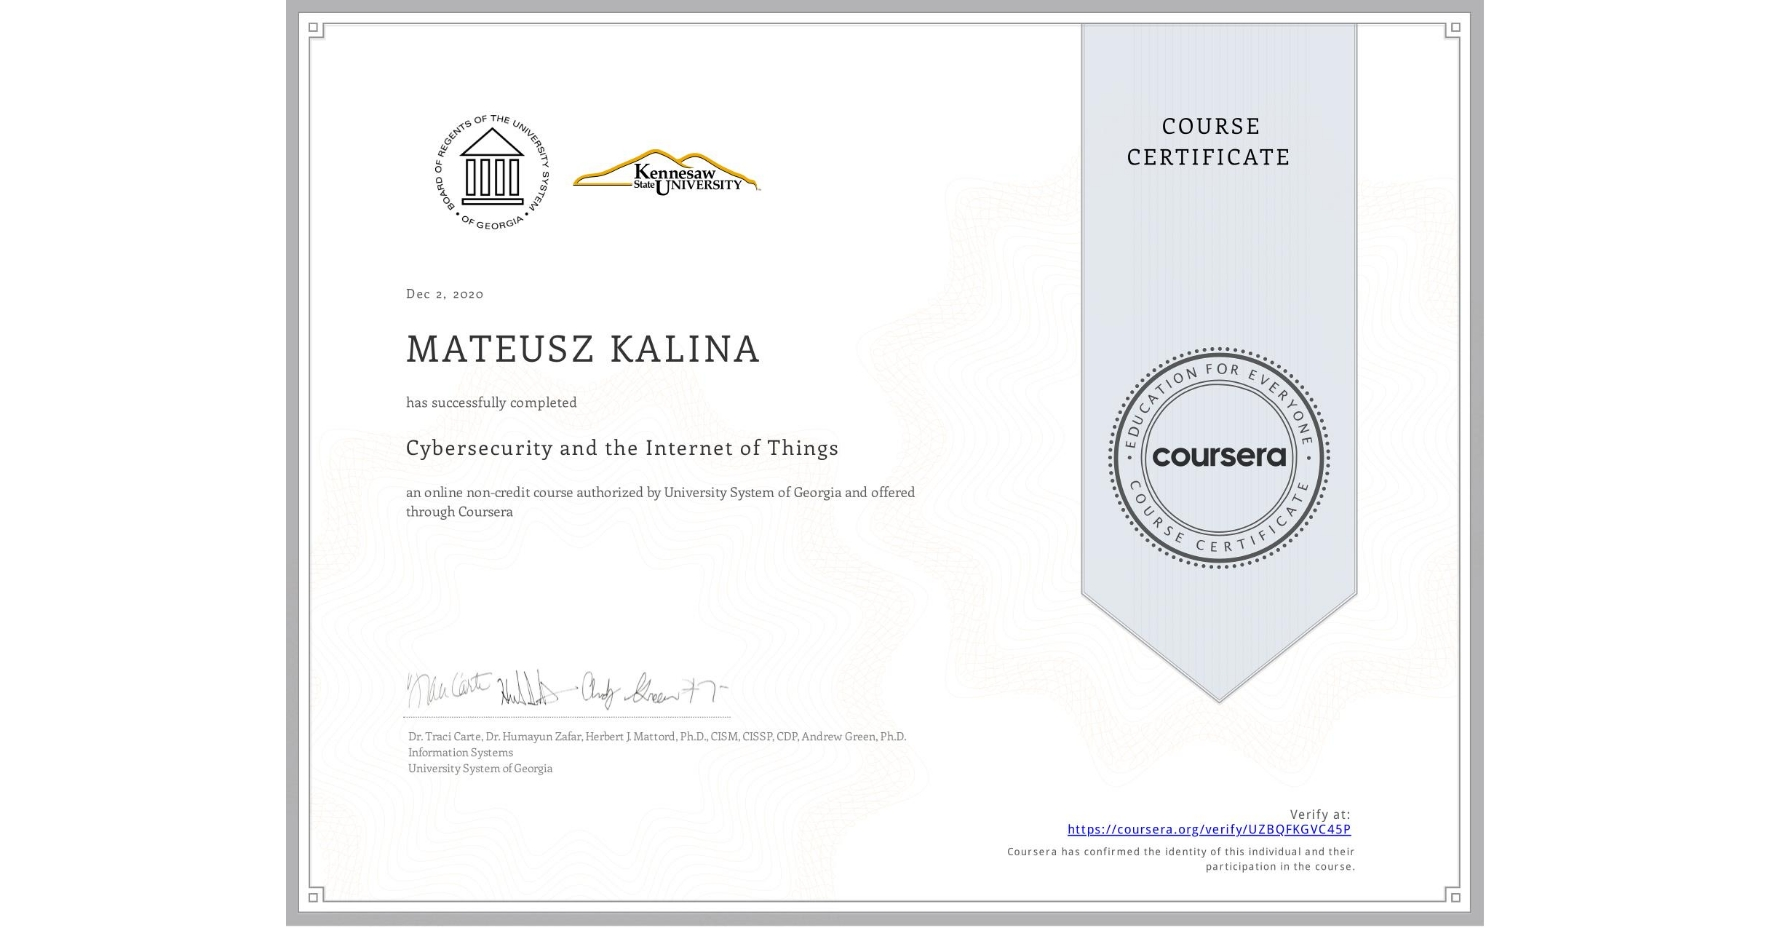 View certificate for MATEUSZ KALINA, Cybersecurity and the Internet of Things, an online non-credit course authorized by University System of Georgia and offered through Coursera